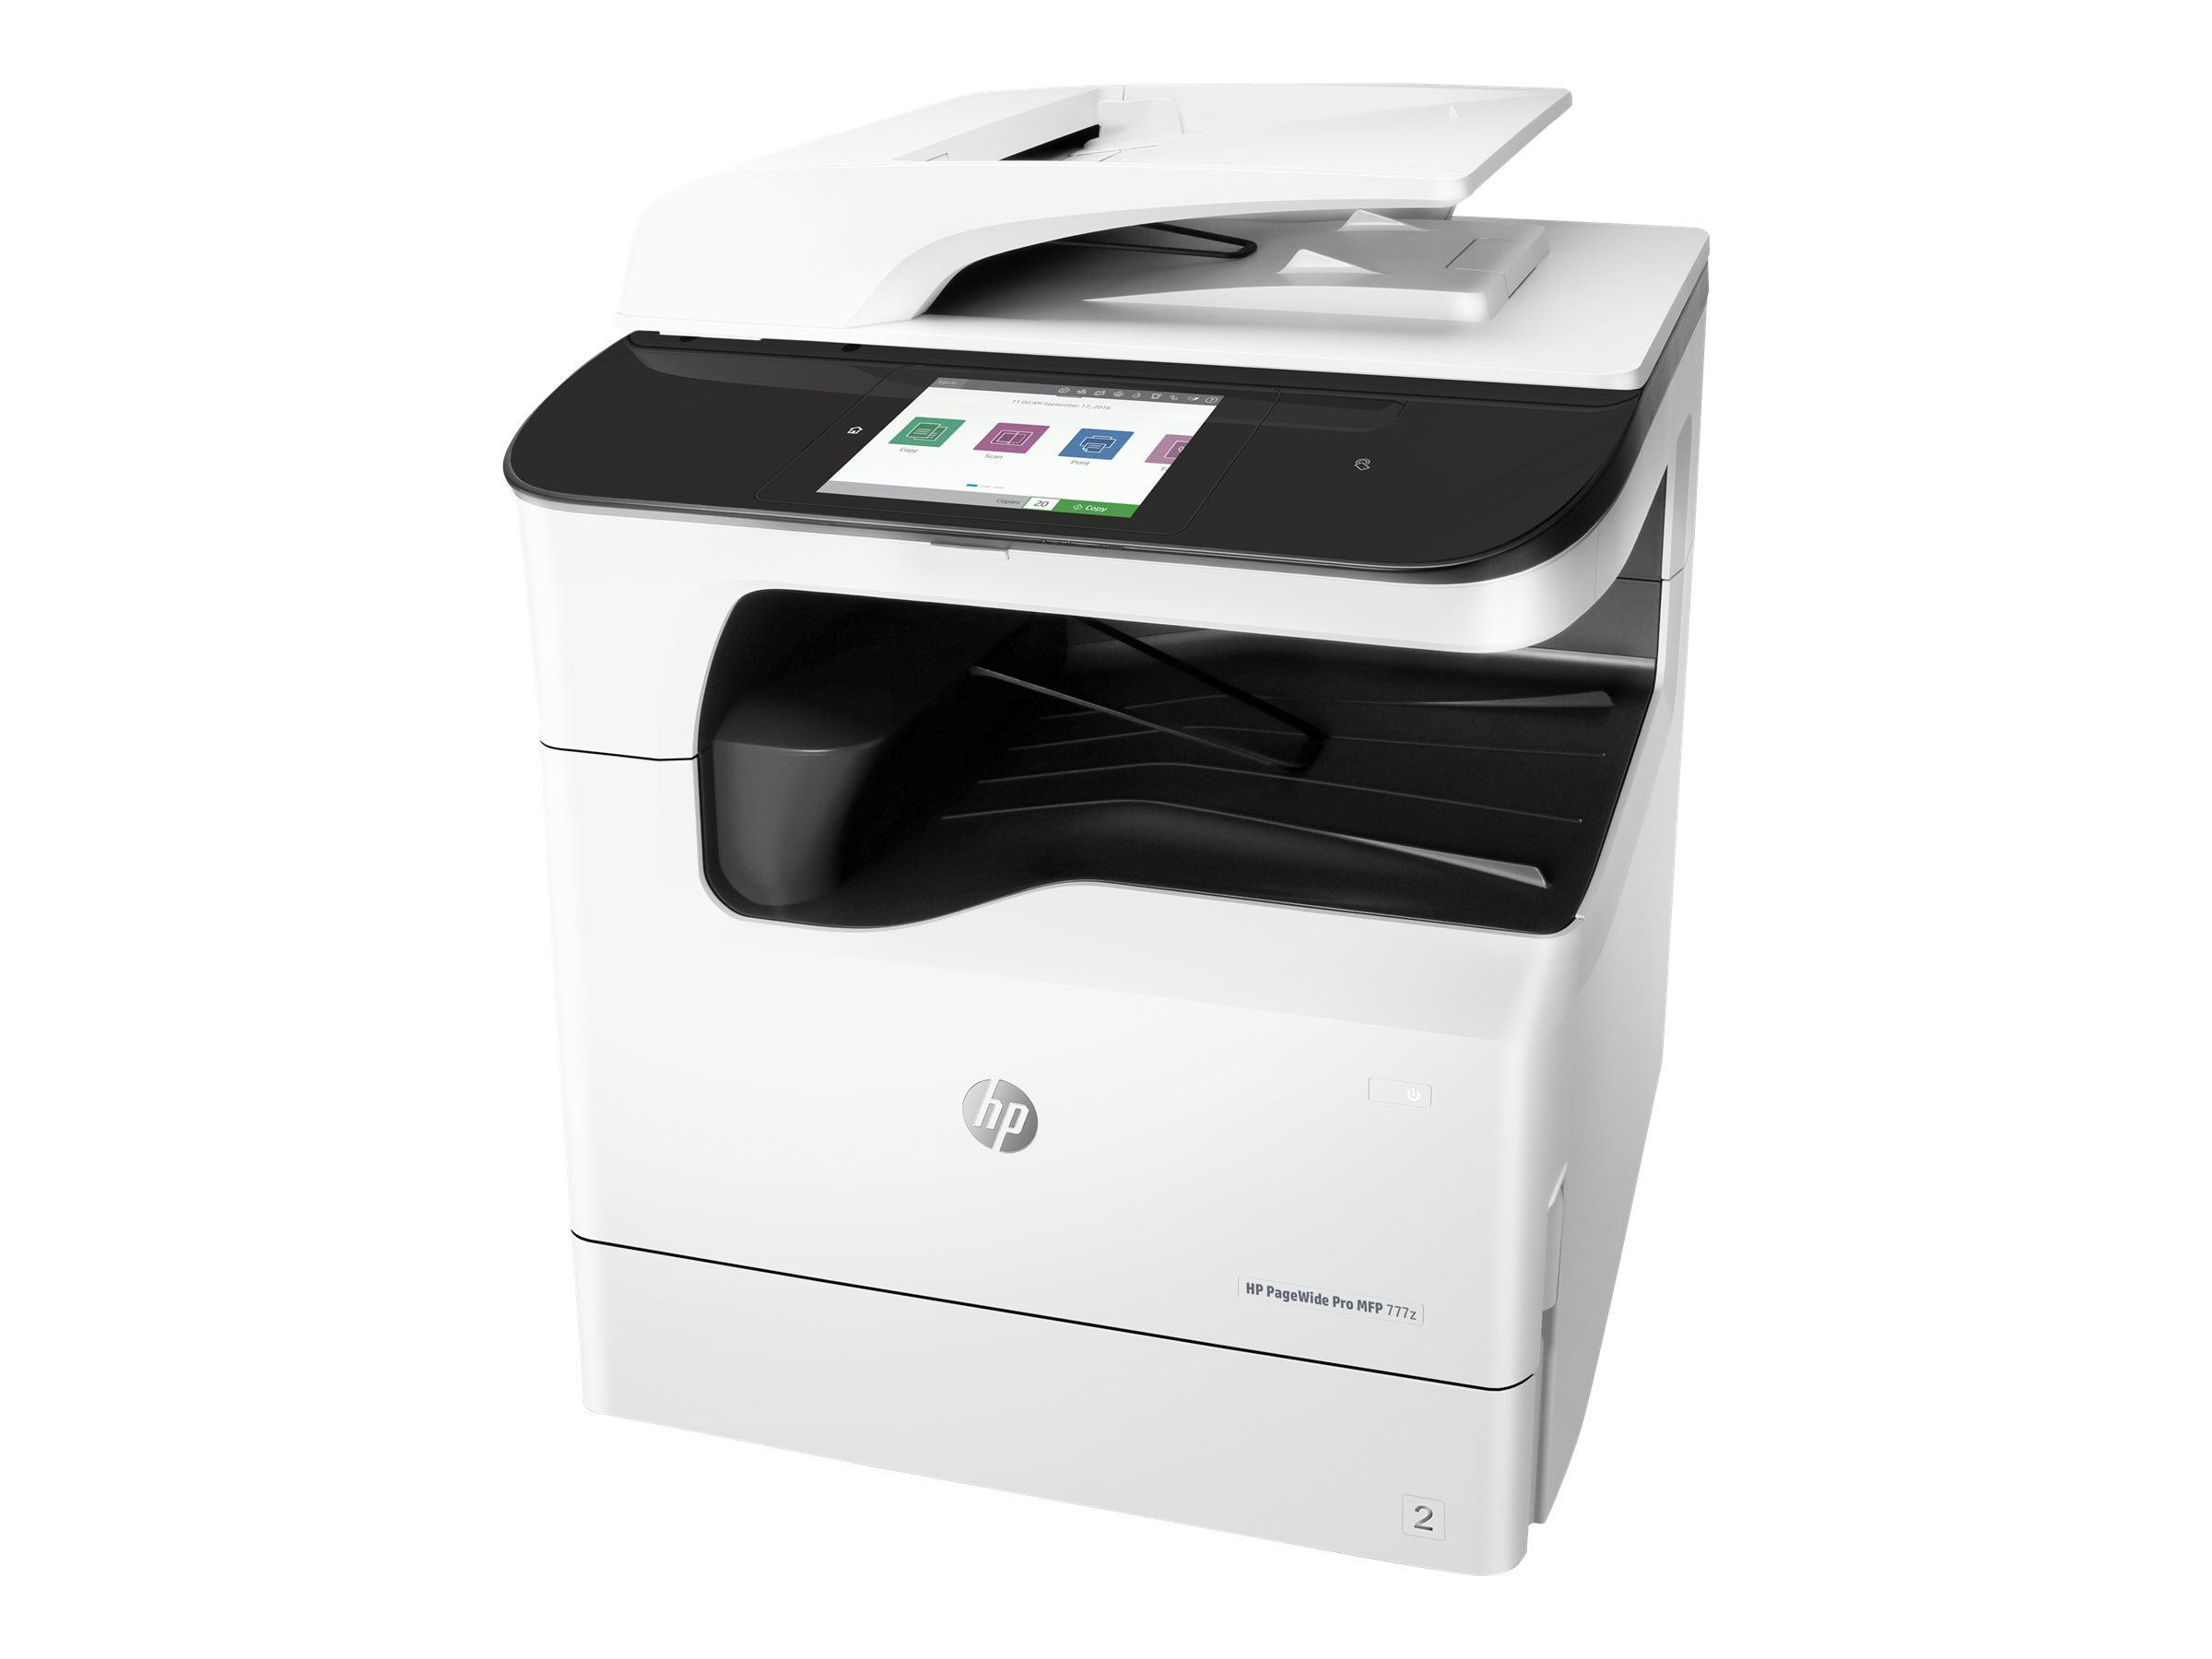 HP PageWide Pro 777z - Multifunktionsdrucker - Farbe - Tintenstrahl - A4 (210 x 297 mm)